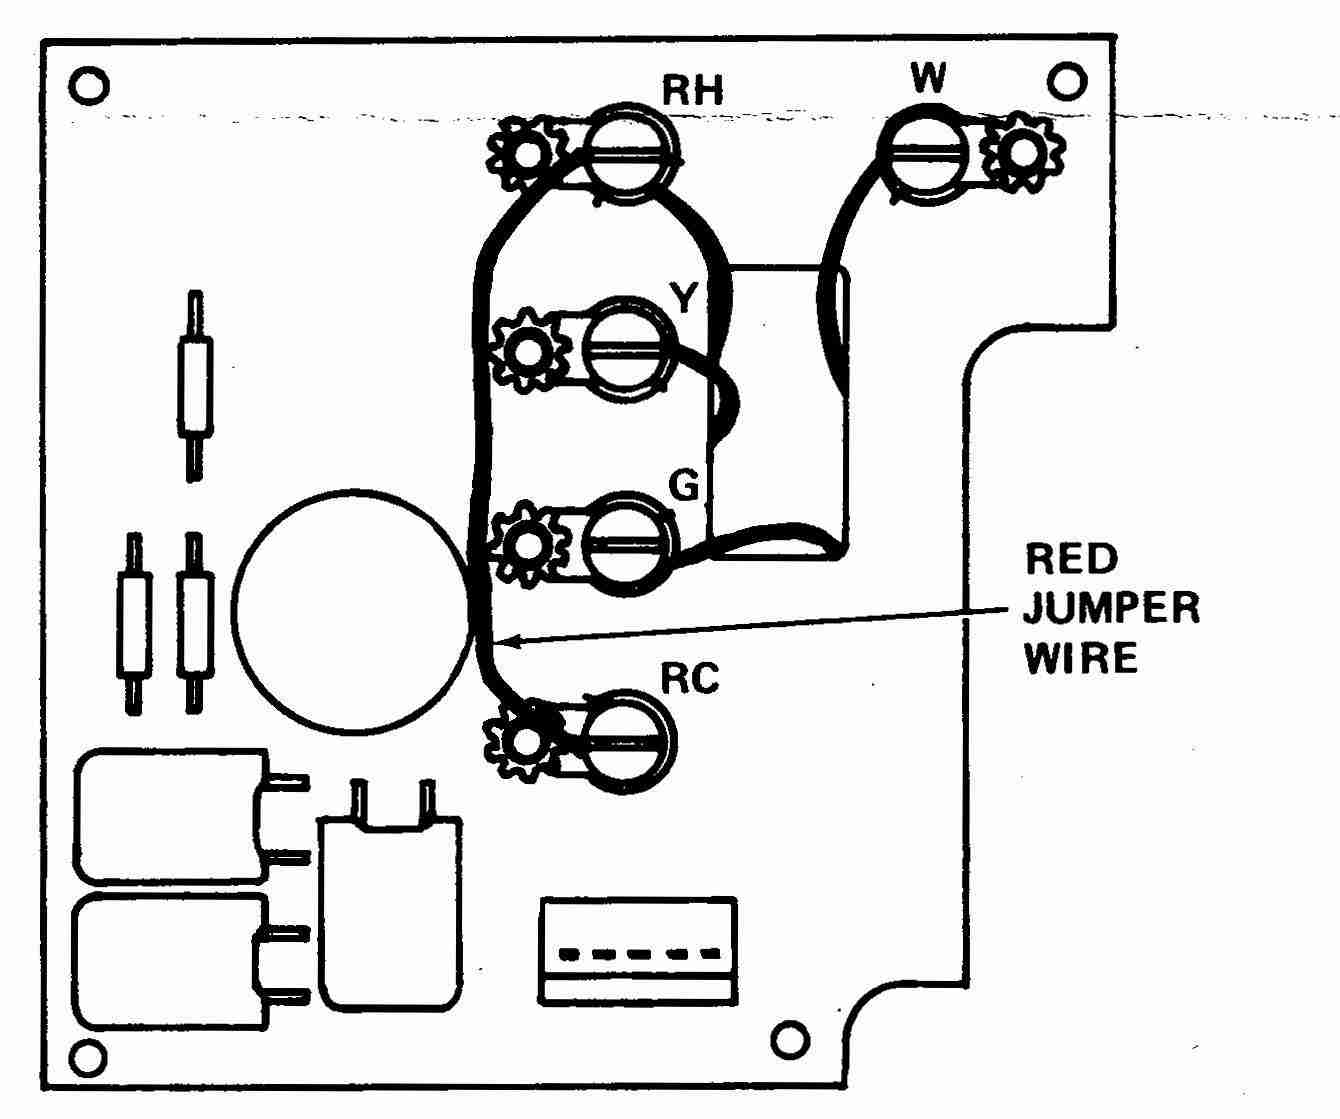 white rodgers wiring diagram 28 images white rodgers thermostat rh sauhosting us white rodgers 90-293q relay wiring diagram white rodgers fan center relay wiring diagram